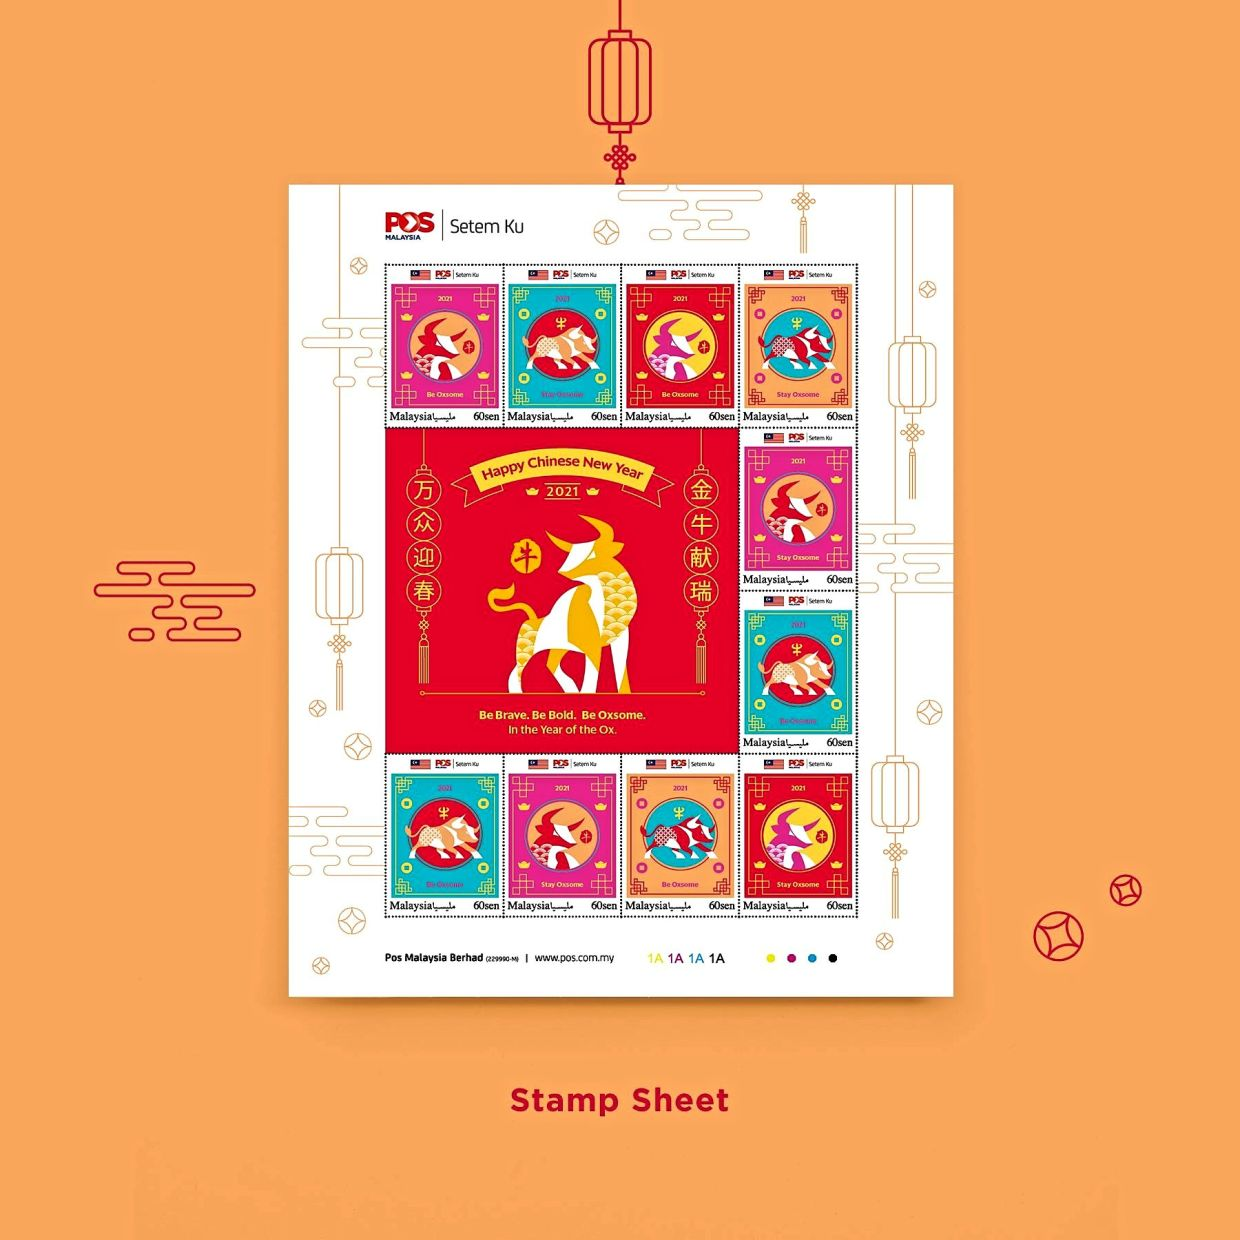 Stamp sheet from the  limited-edition Chinese New Year stamp  collection.